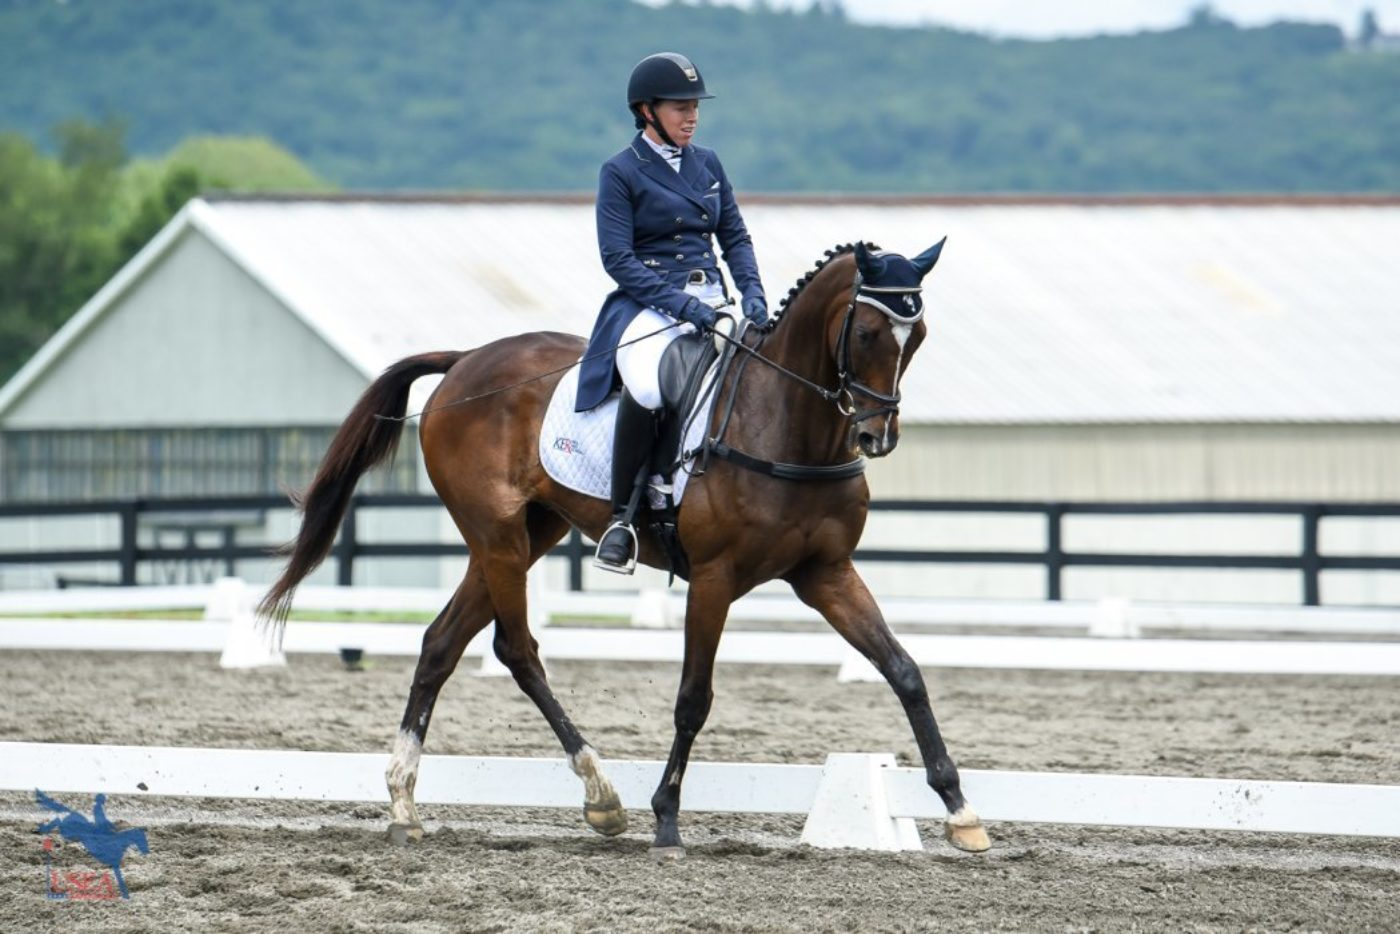 44th - Laura Welsh  and Galactic - 41.8